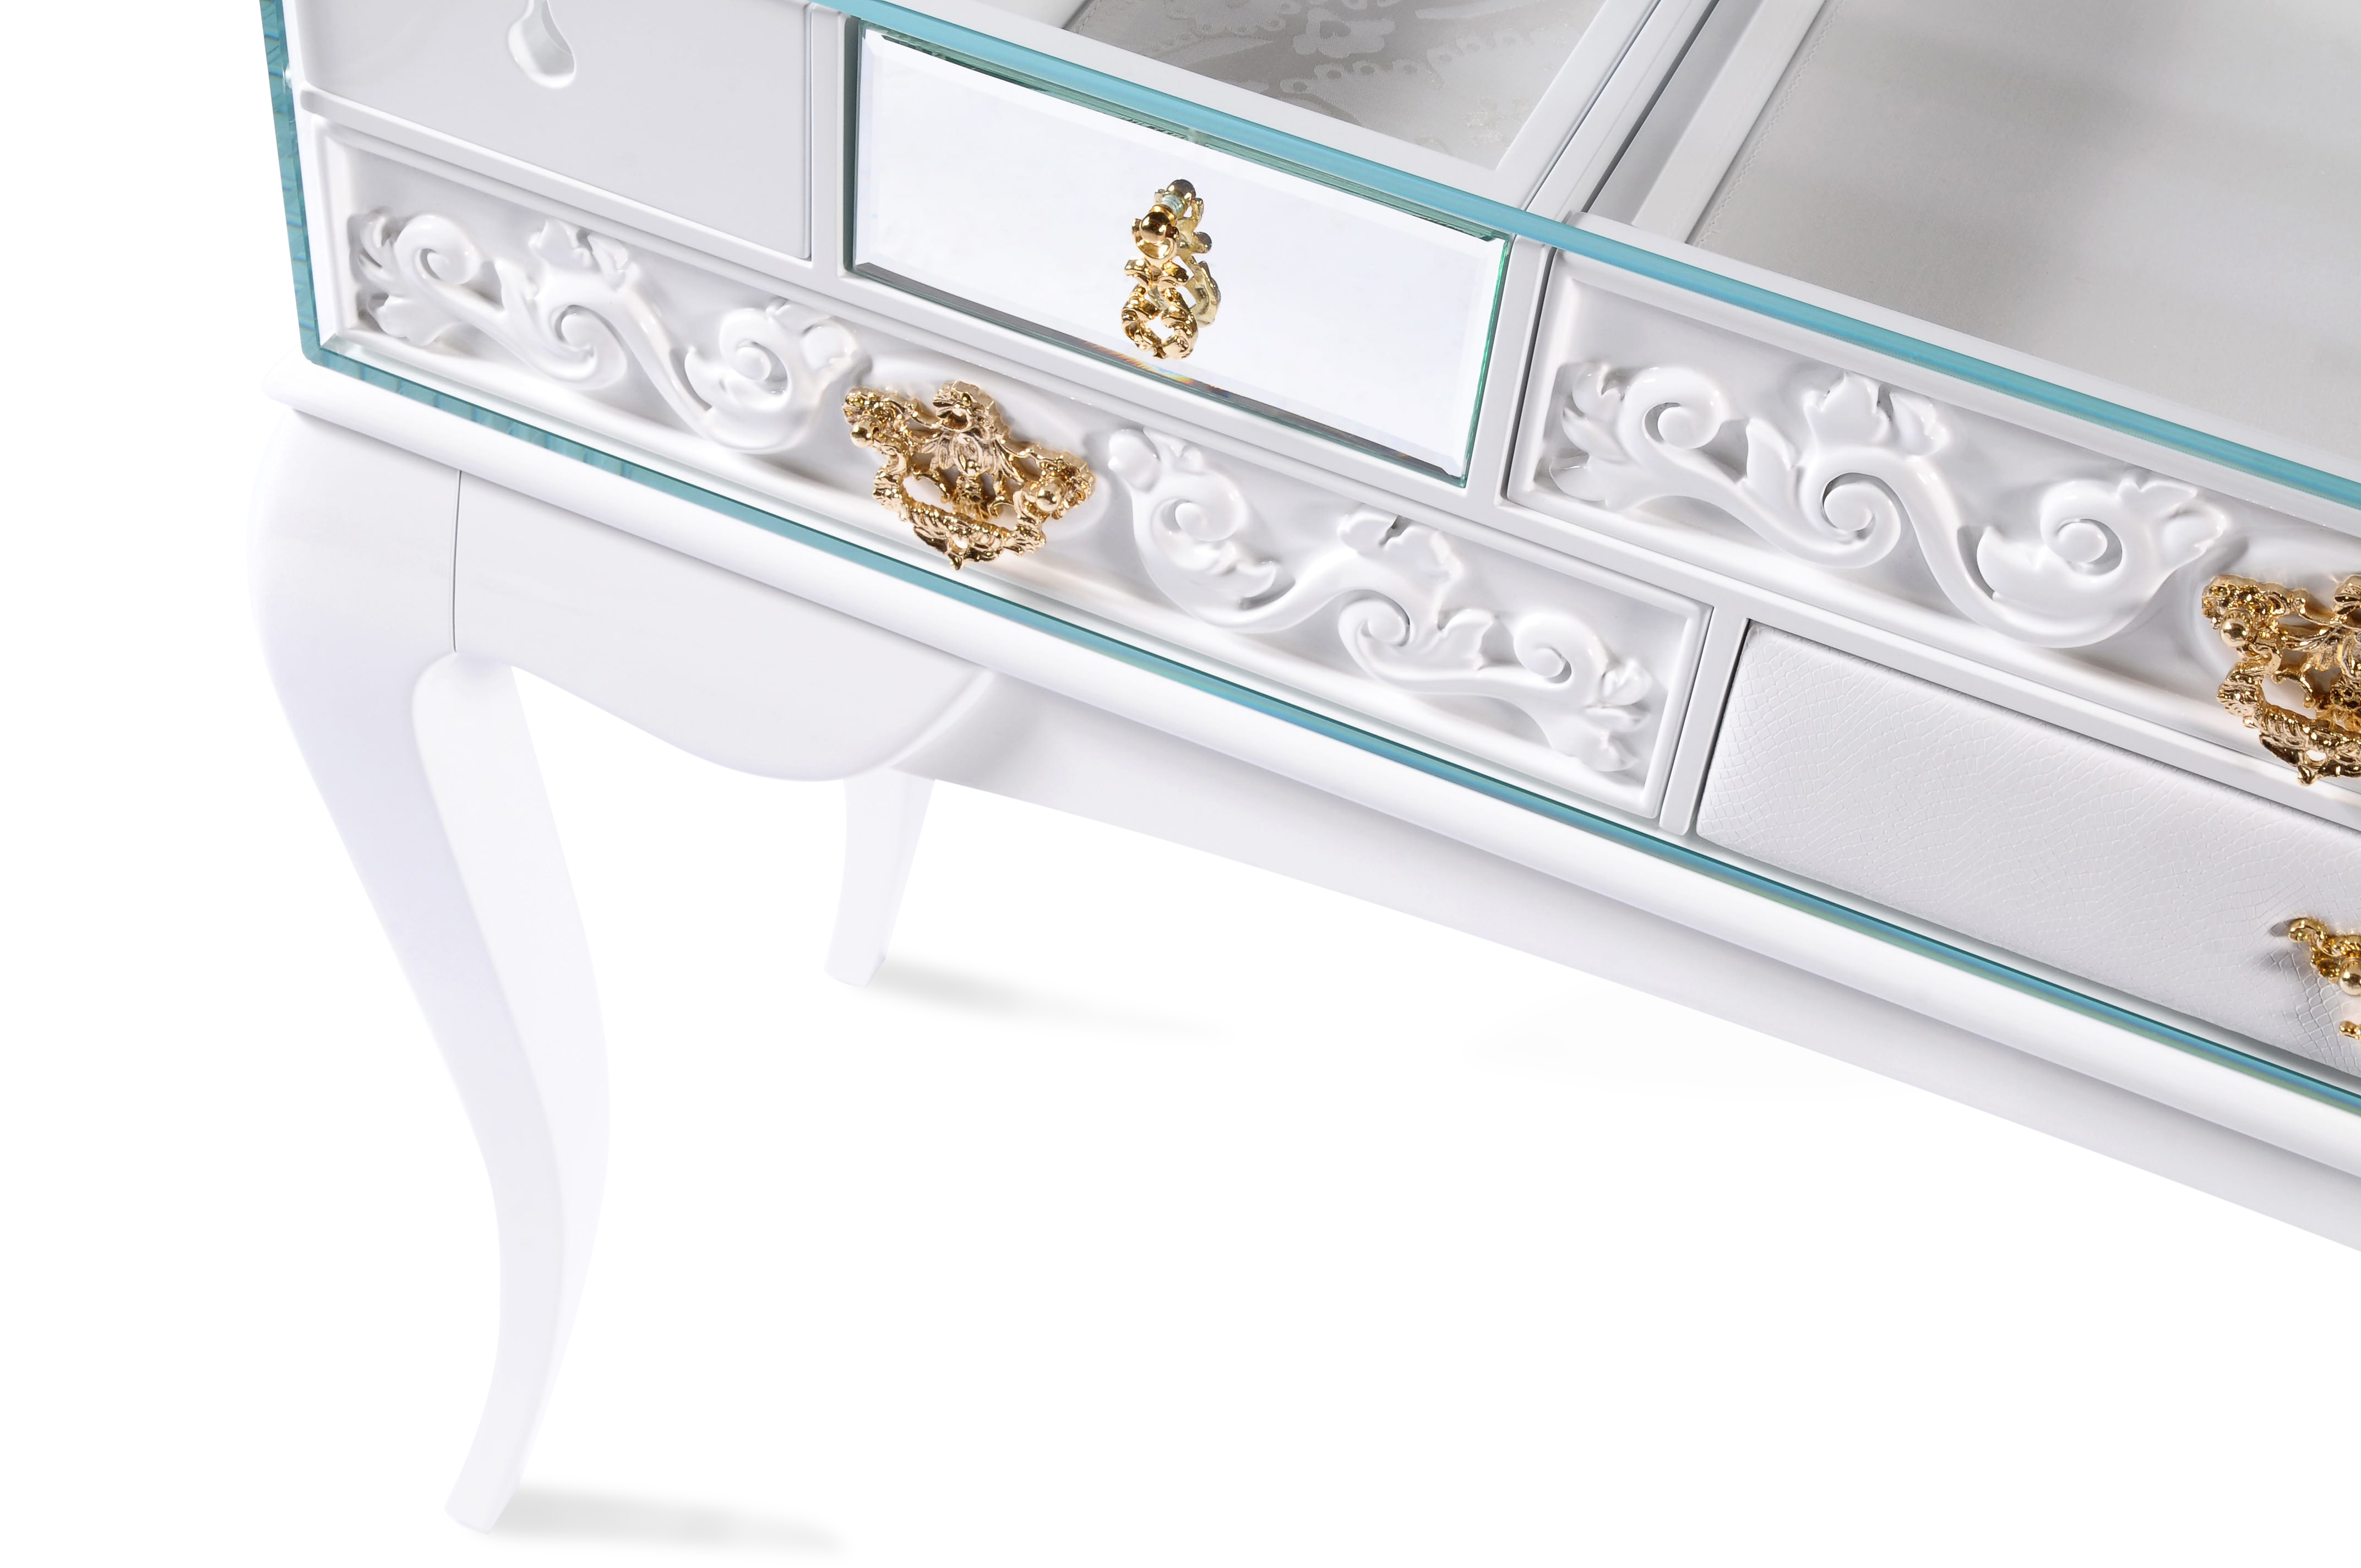 Boca do Lobo York Console White hamptons look Get the Hamptons Look with These Gorgeous Console Tables york 03